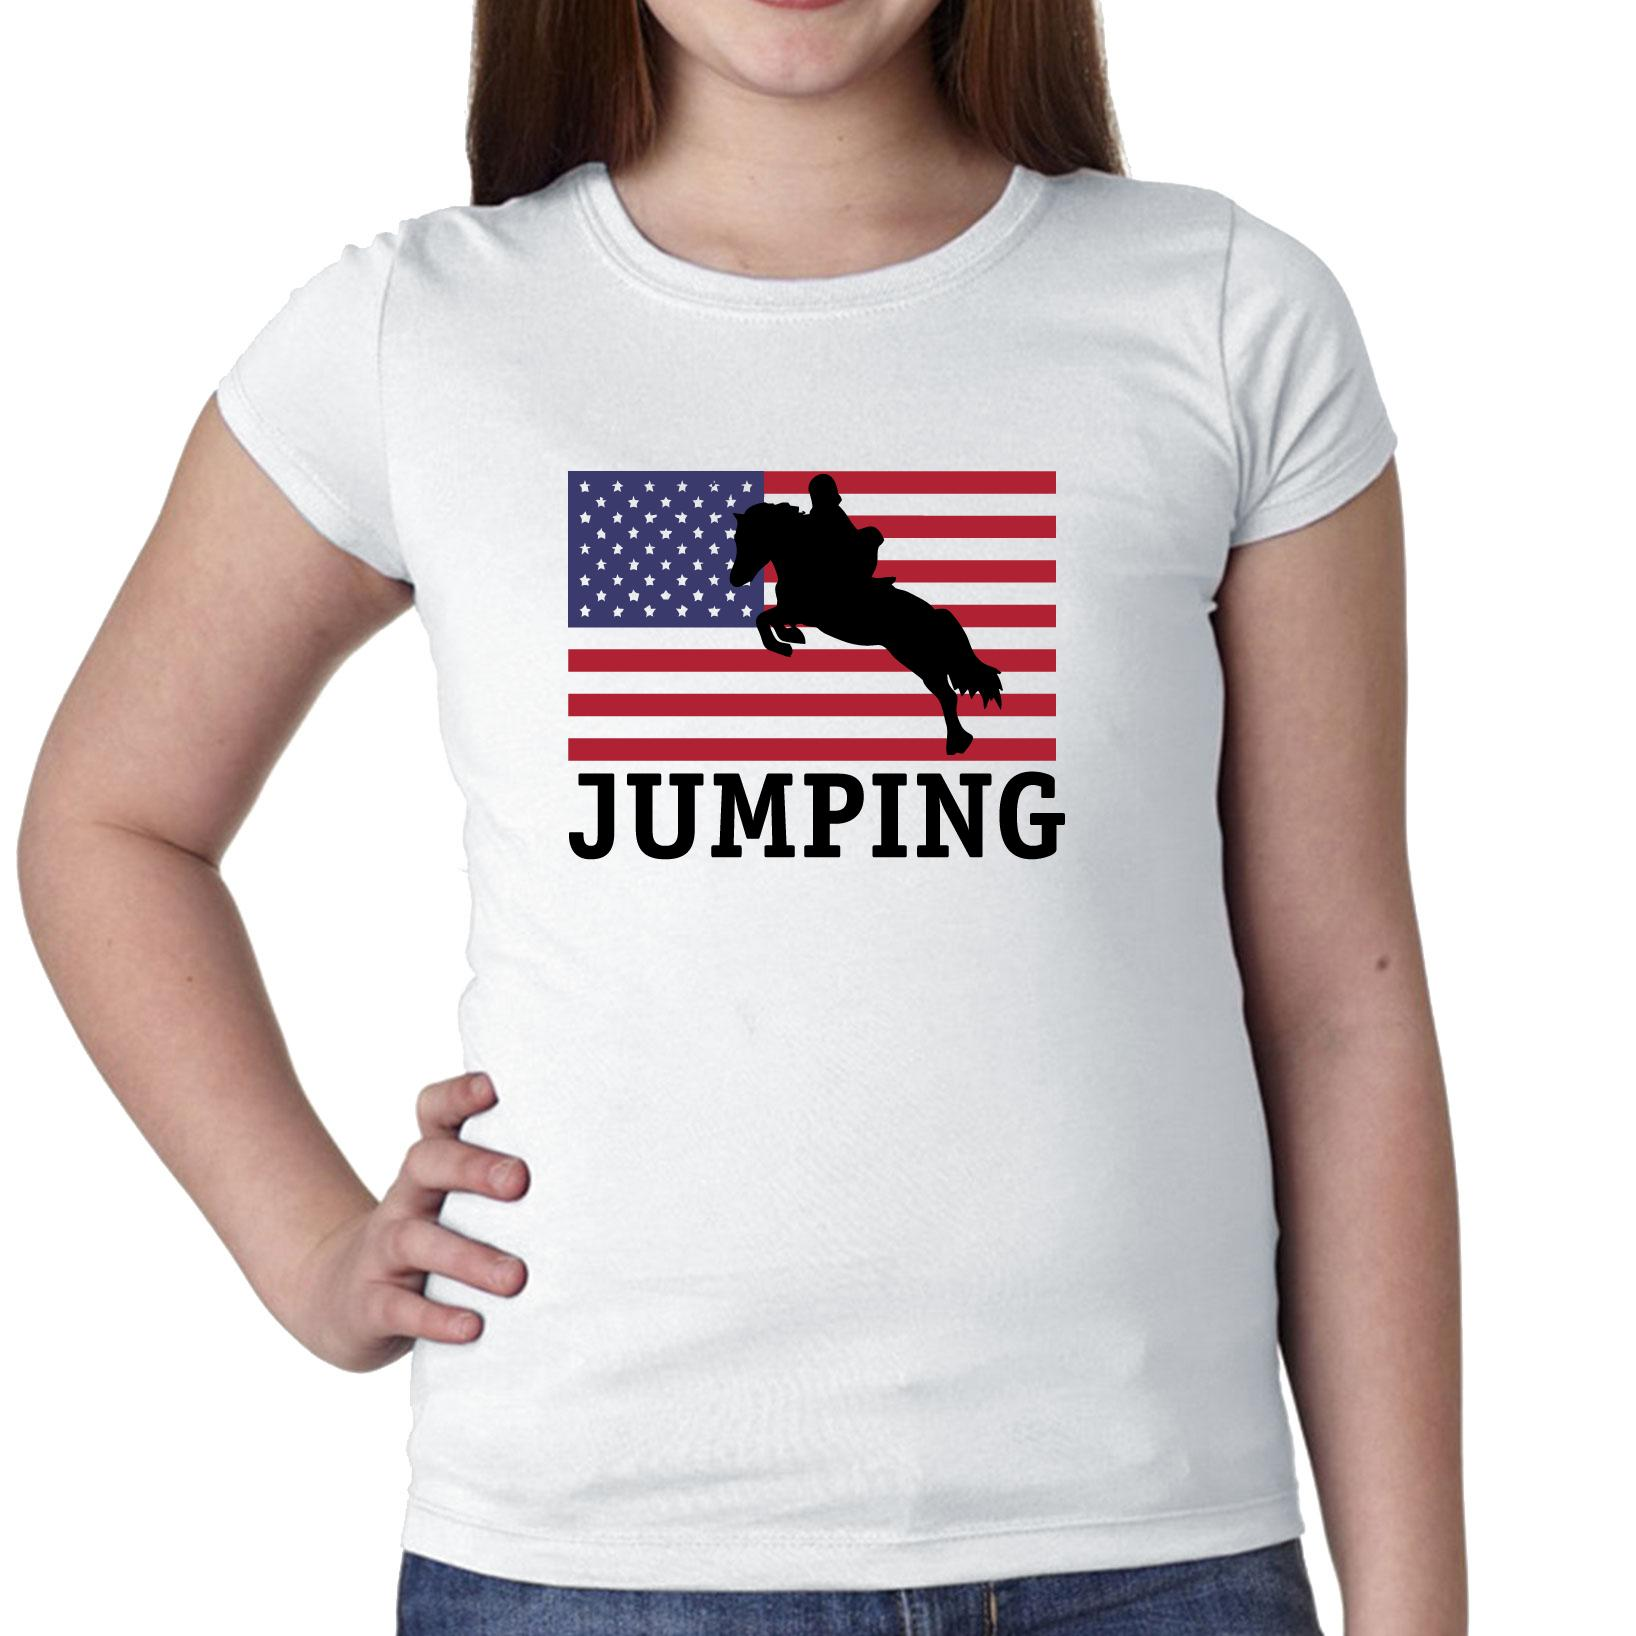 USA Olympic - Jumping - Flag - Silhouette Girl's Cotton Youth T-Shirt